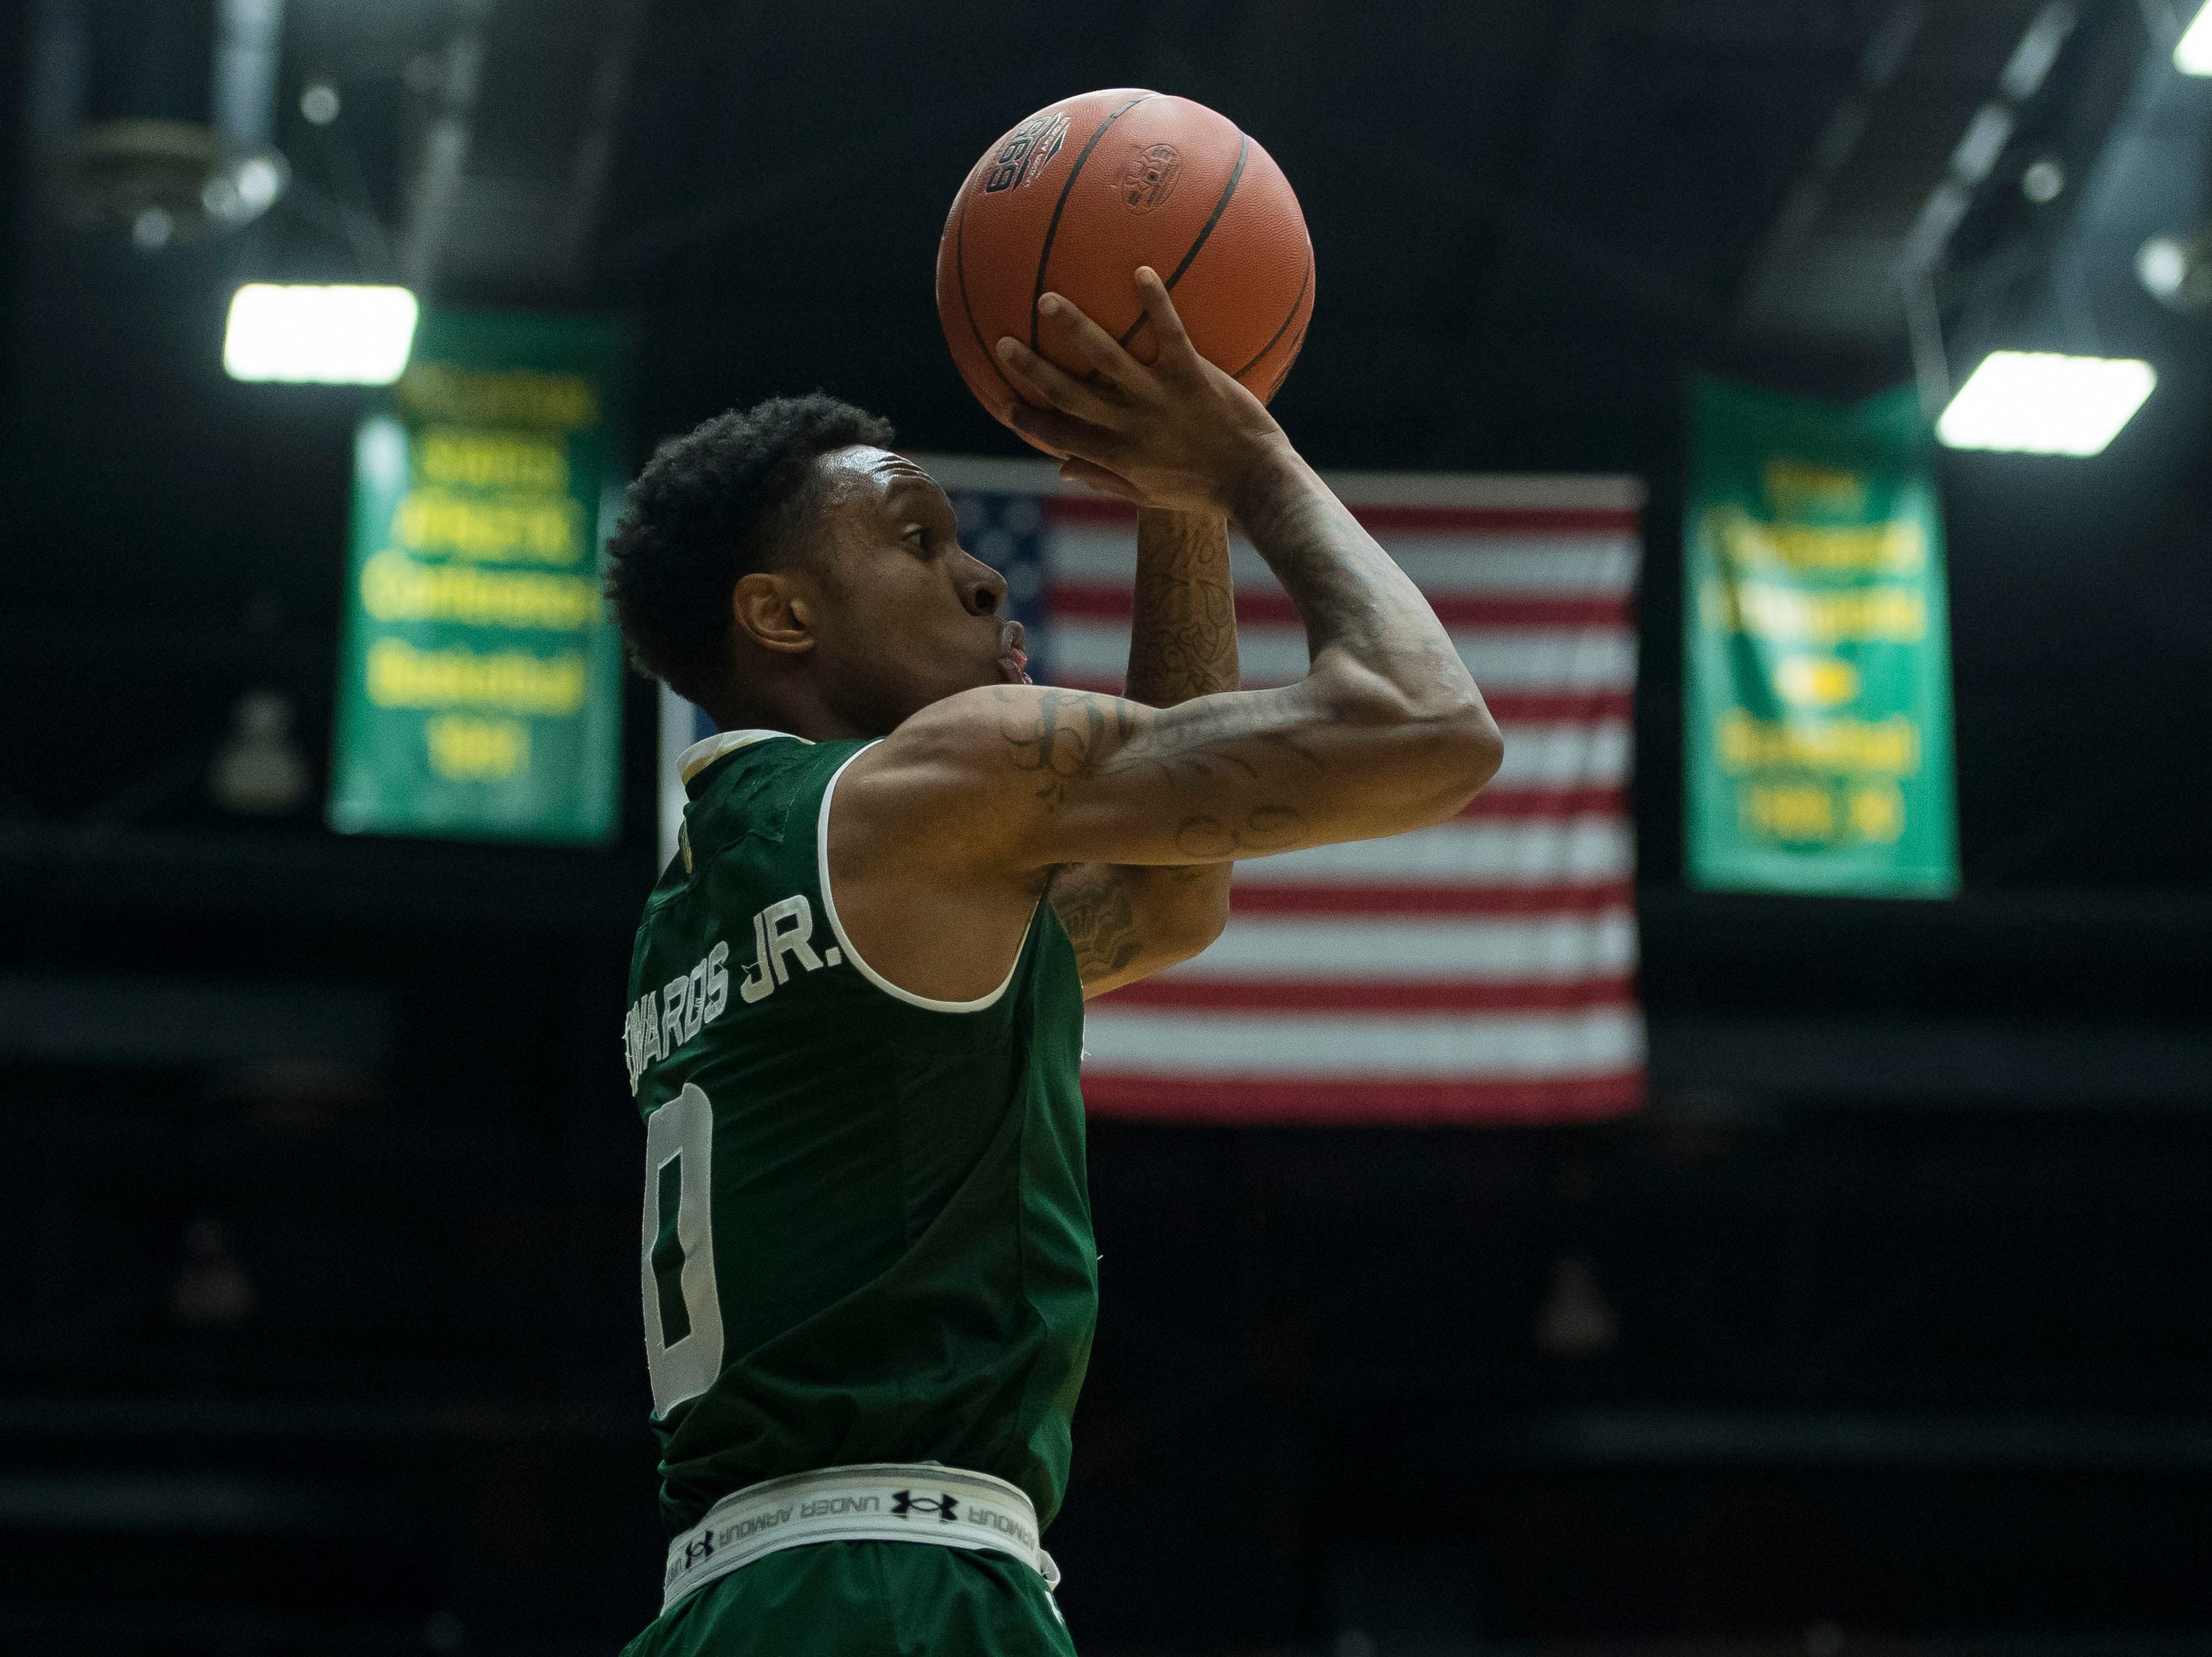 Colorado State University senior guard Hyron Edwards (0) takes a shot during a game against University of Nevada Las Vegas on Saturday, March 9, 2019, at Moby Arena in Fort Collins, Colo.